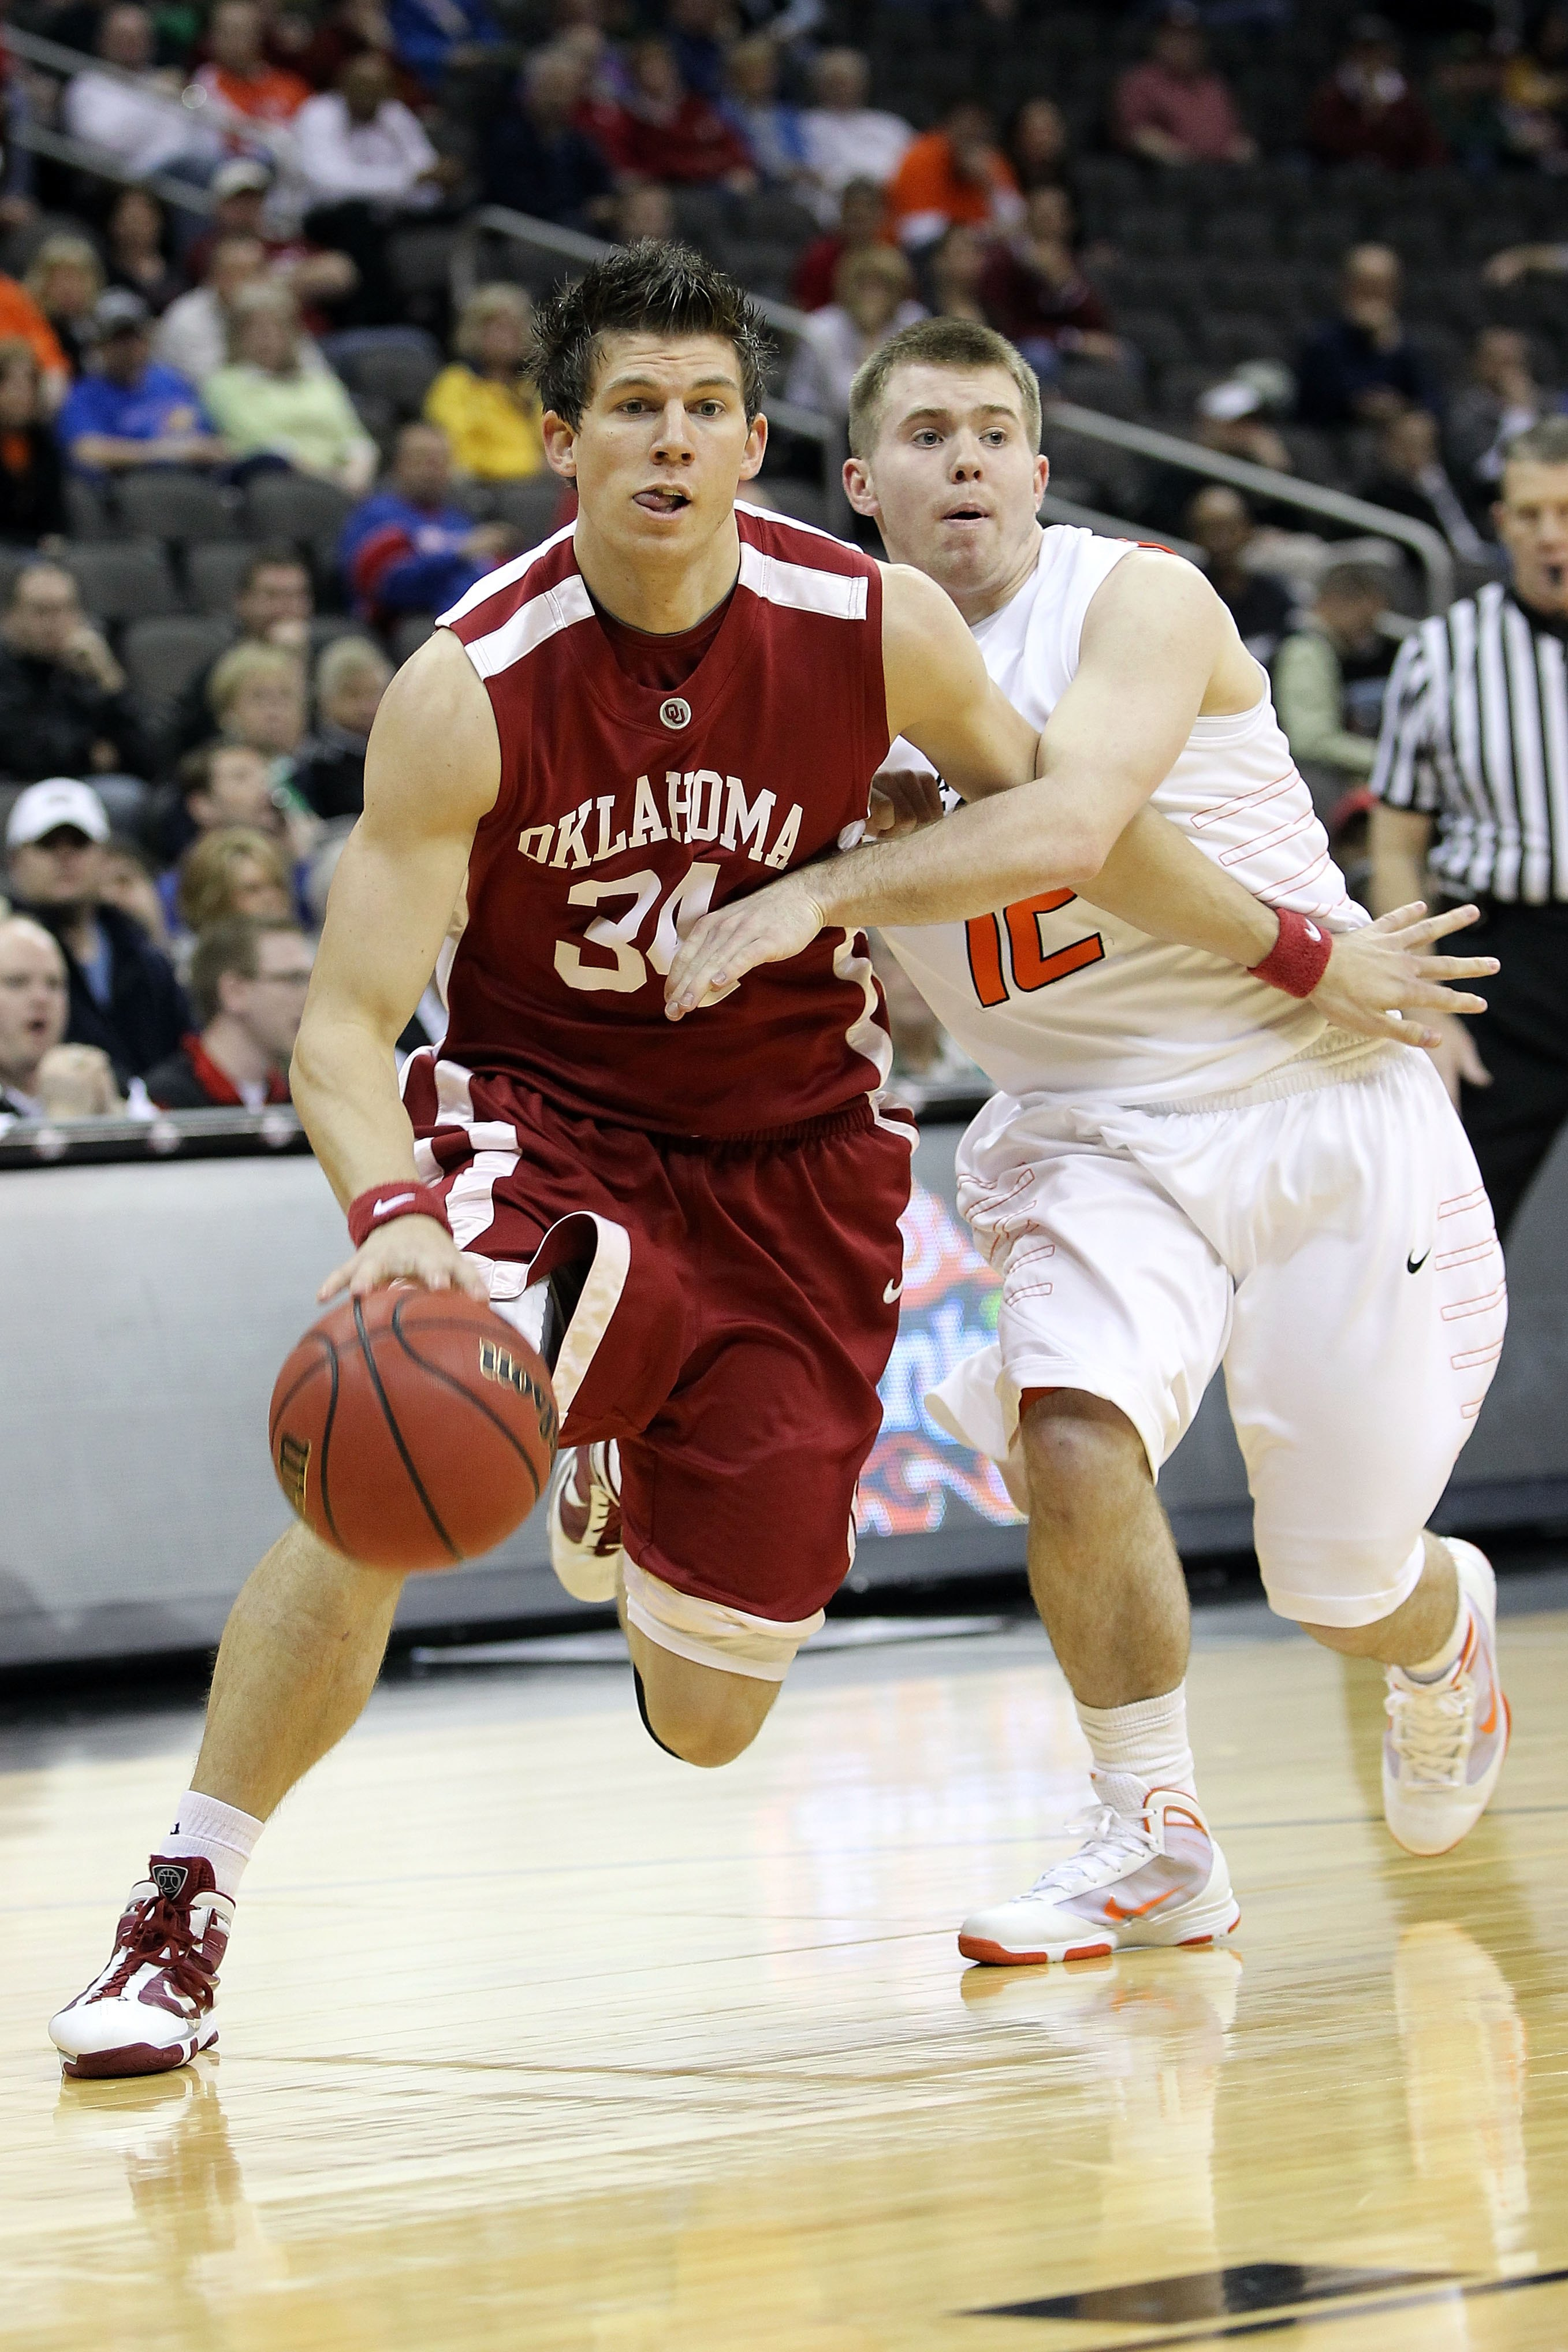 KANSAS CITY, MO - MARCH 10:  Cade Davis #34 of the Oklahoma Sooners drives on Keiton Page #12 of the Oklahoma State Cowboys during the first round game of the 2010 Phillips 66 Big 12 Men's Basketball Tournament at the Sprint Center on March 10, 2010 in Ka